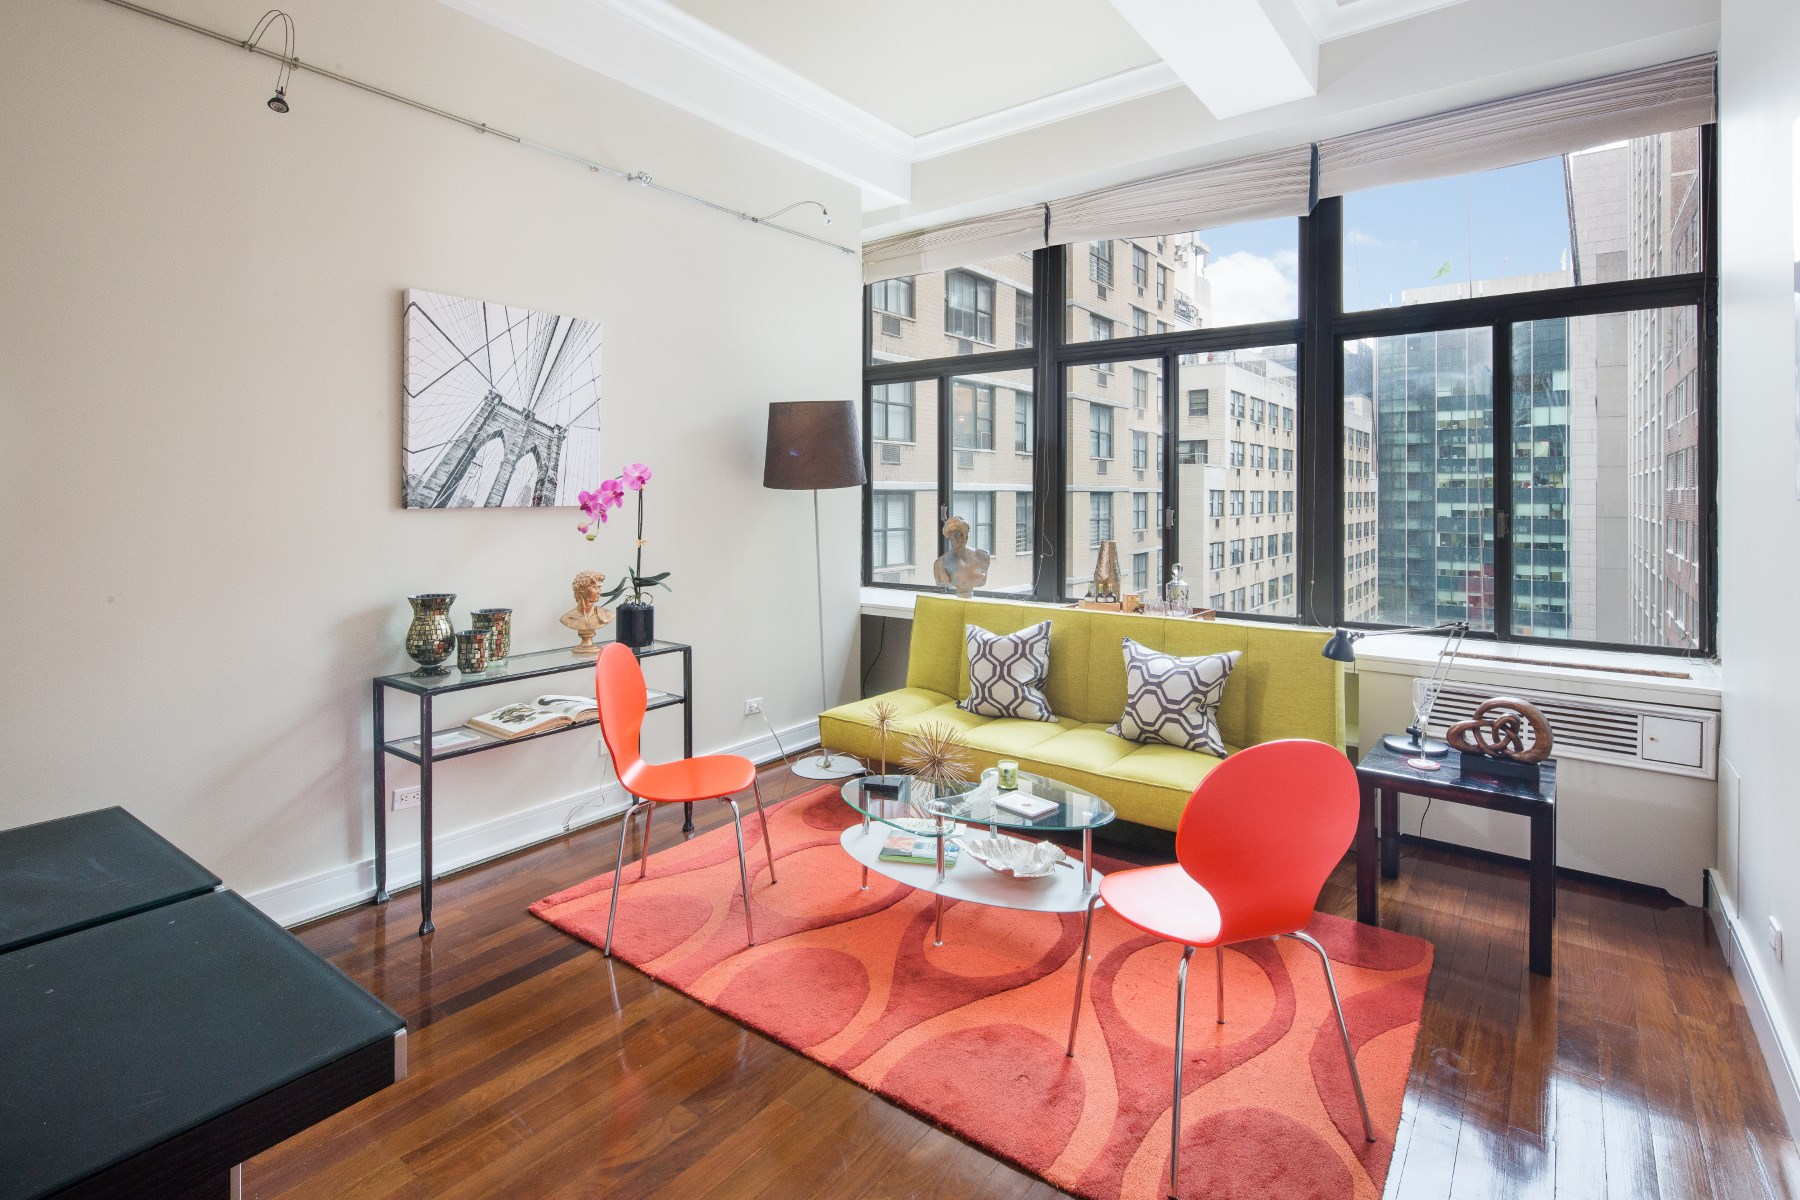 Квартира для того Продажа на Architectural Loft of Substance 310 East 46th Street Apt 7K Midtown East, New York, Нью-Йорк, 10017 Соединенные Штаты